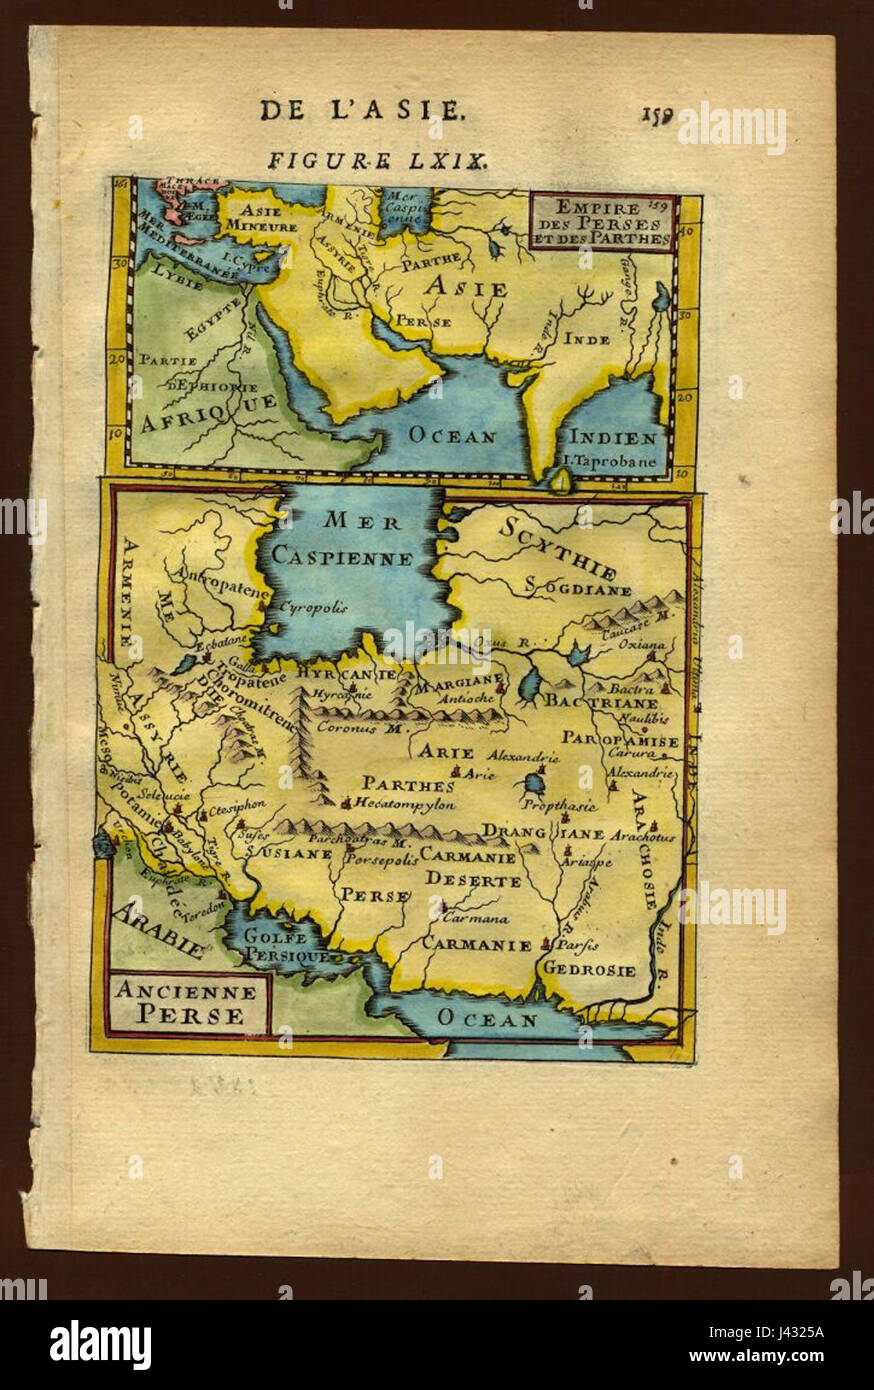 Map of ancient Persia, 1683 Stock Photo: 140209142 - Alamy